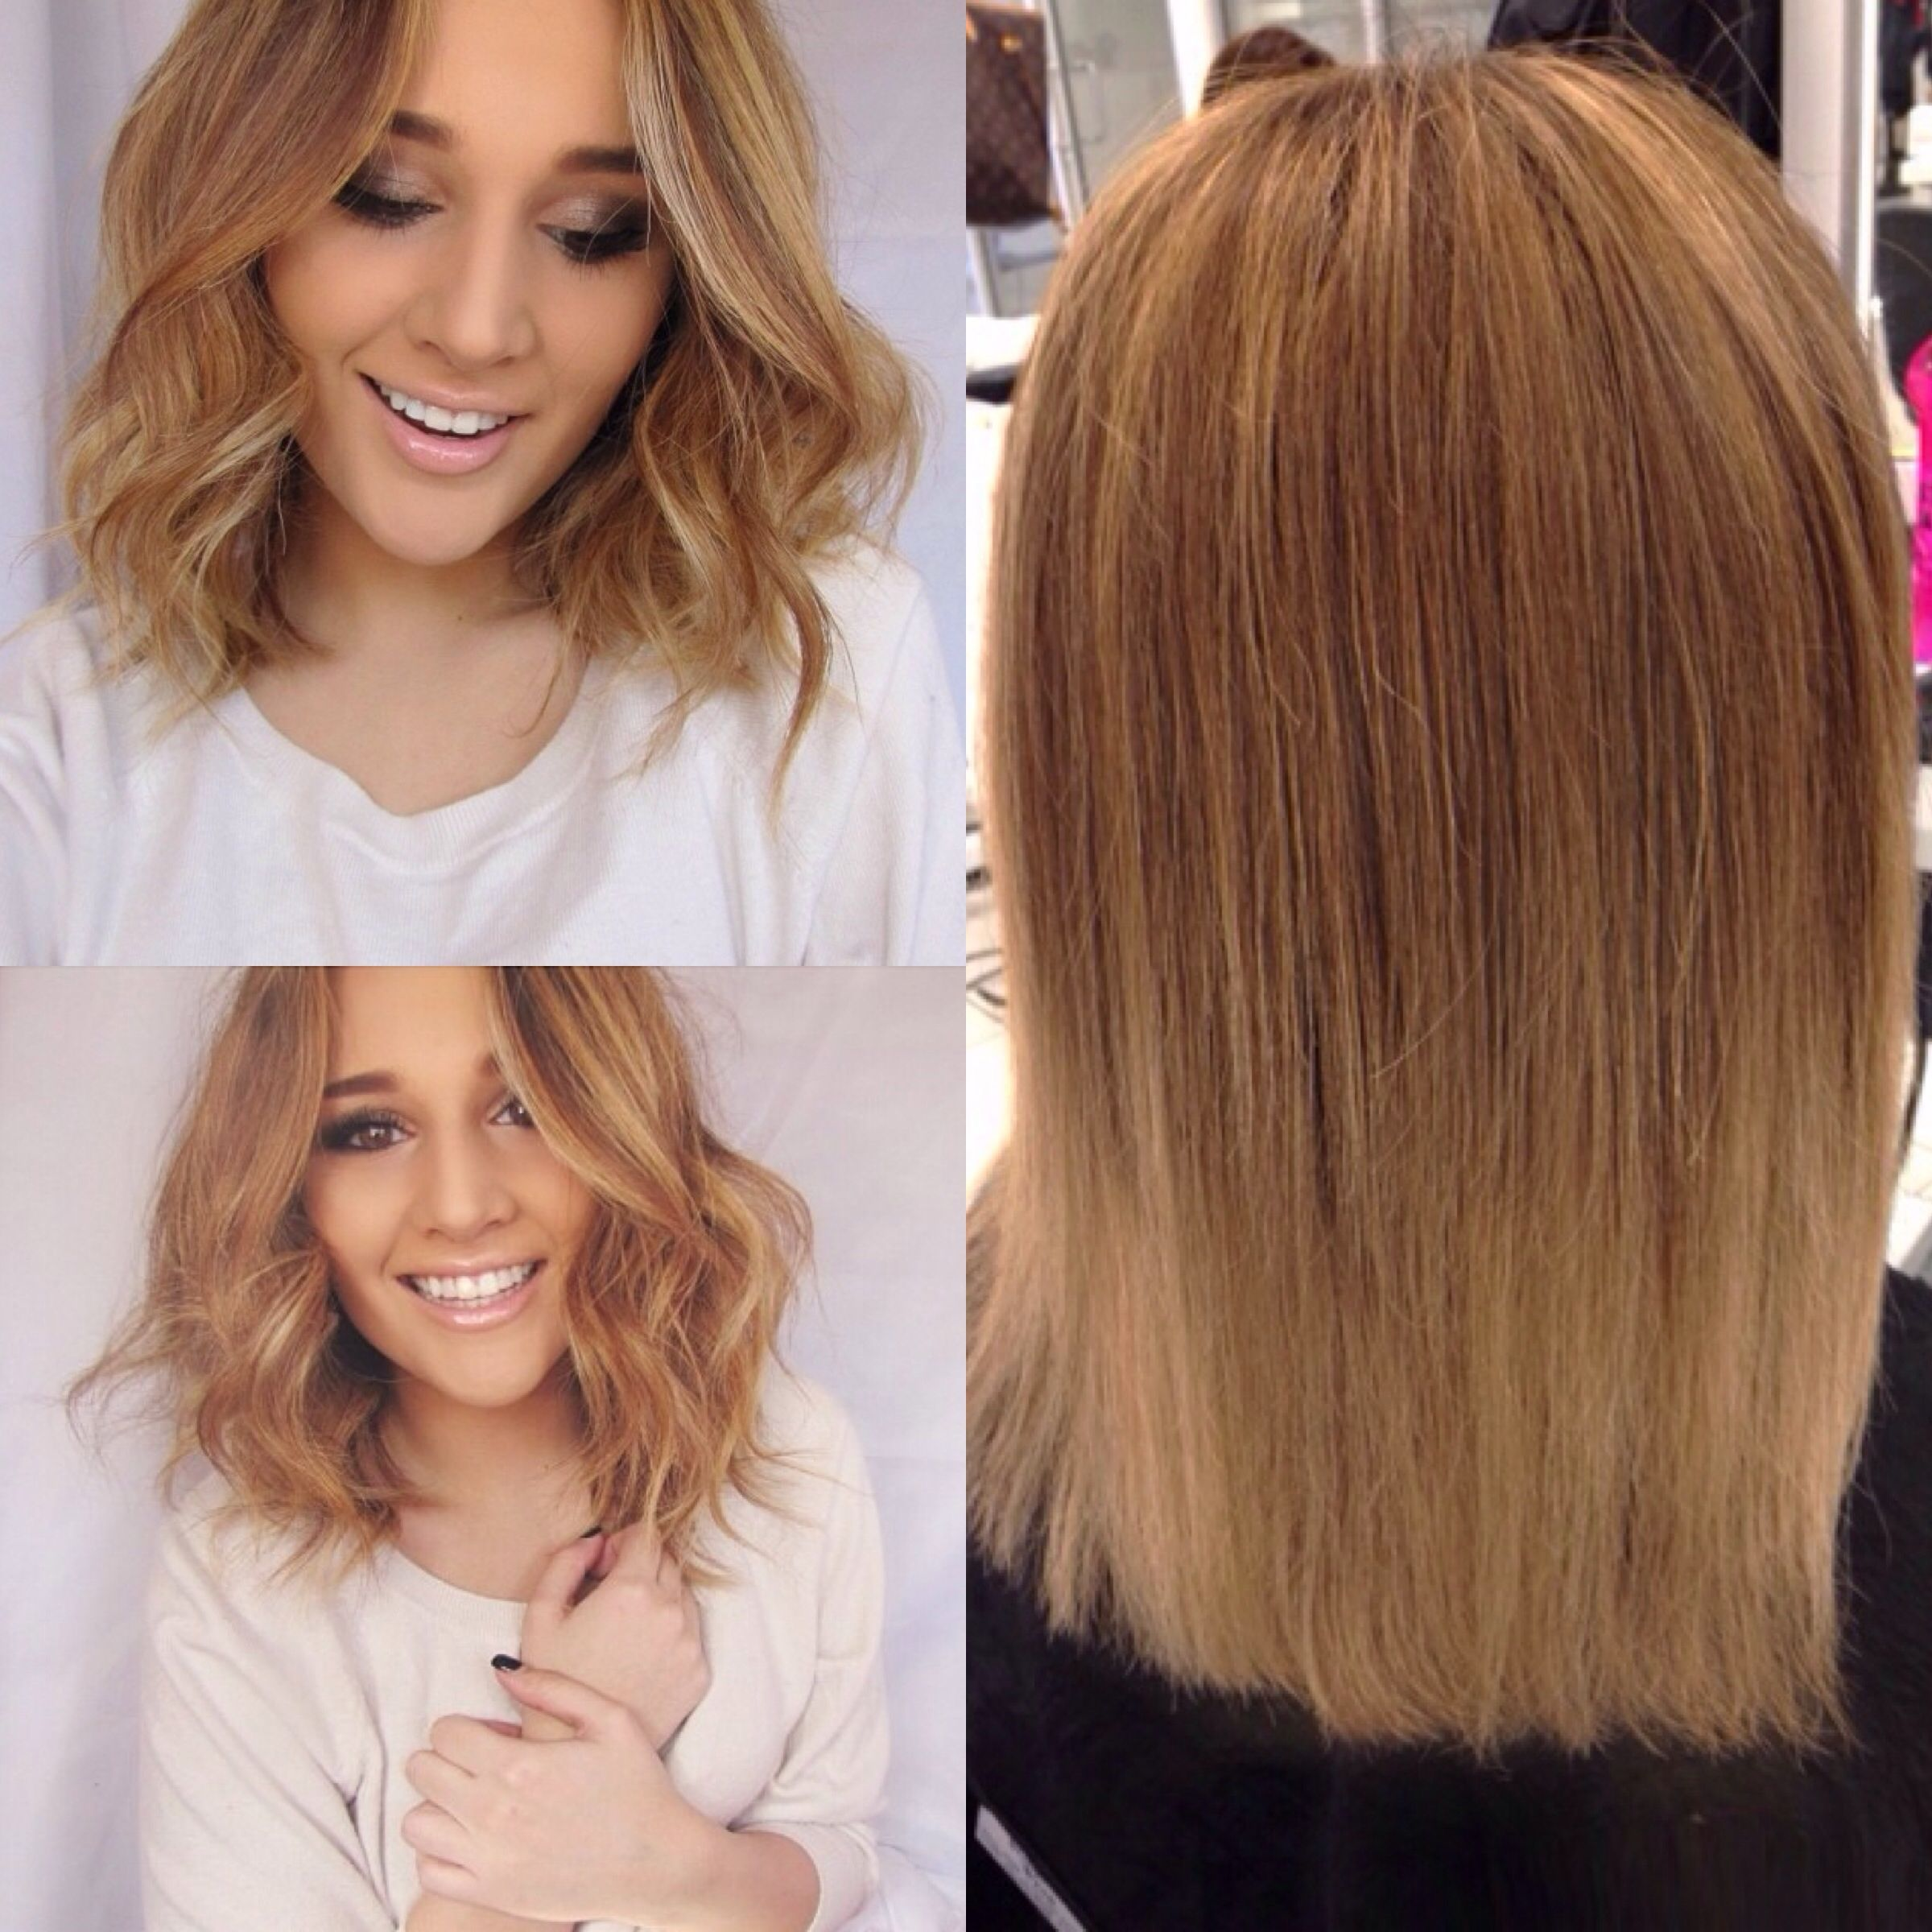 Ombr and mini partial highlights on to gorgeous hair by ombr and mini partial highlights on to gorgeous solutioingenieria Gallery